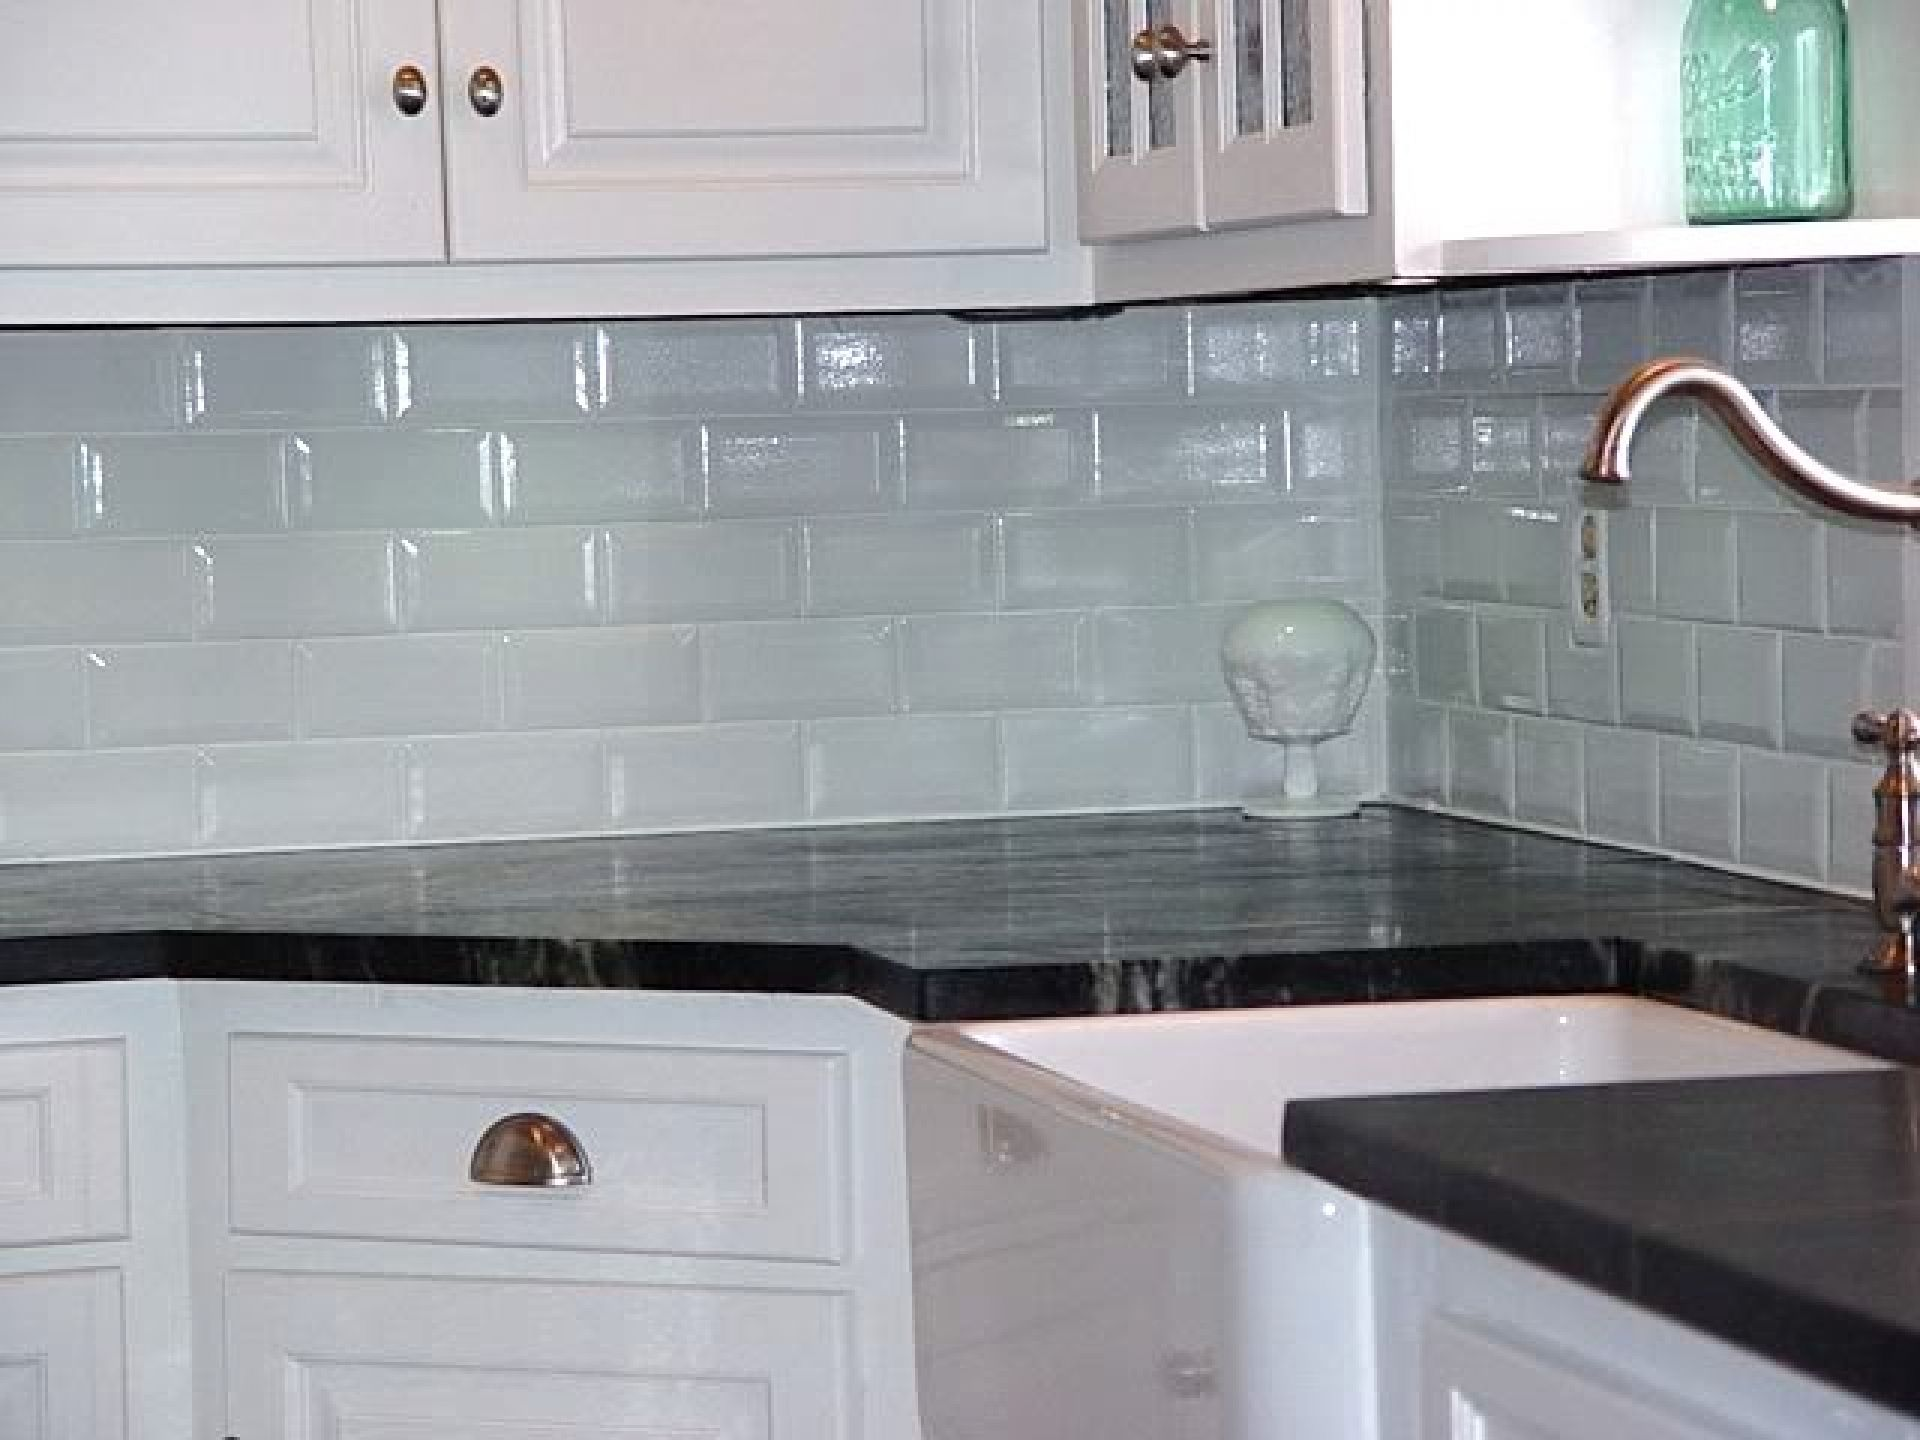 easy kitchen backsplash ideas : charmlife.dynu.com | kitchens ...